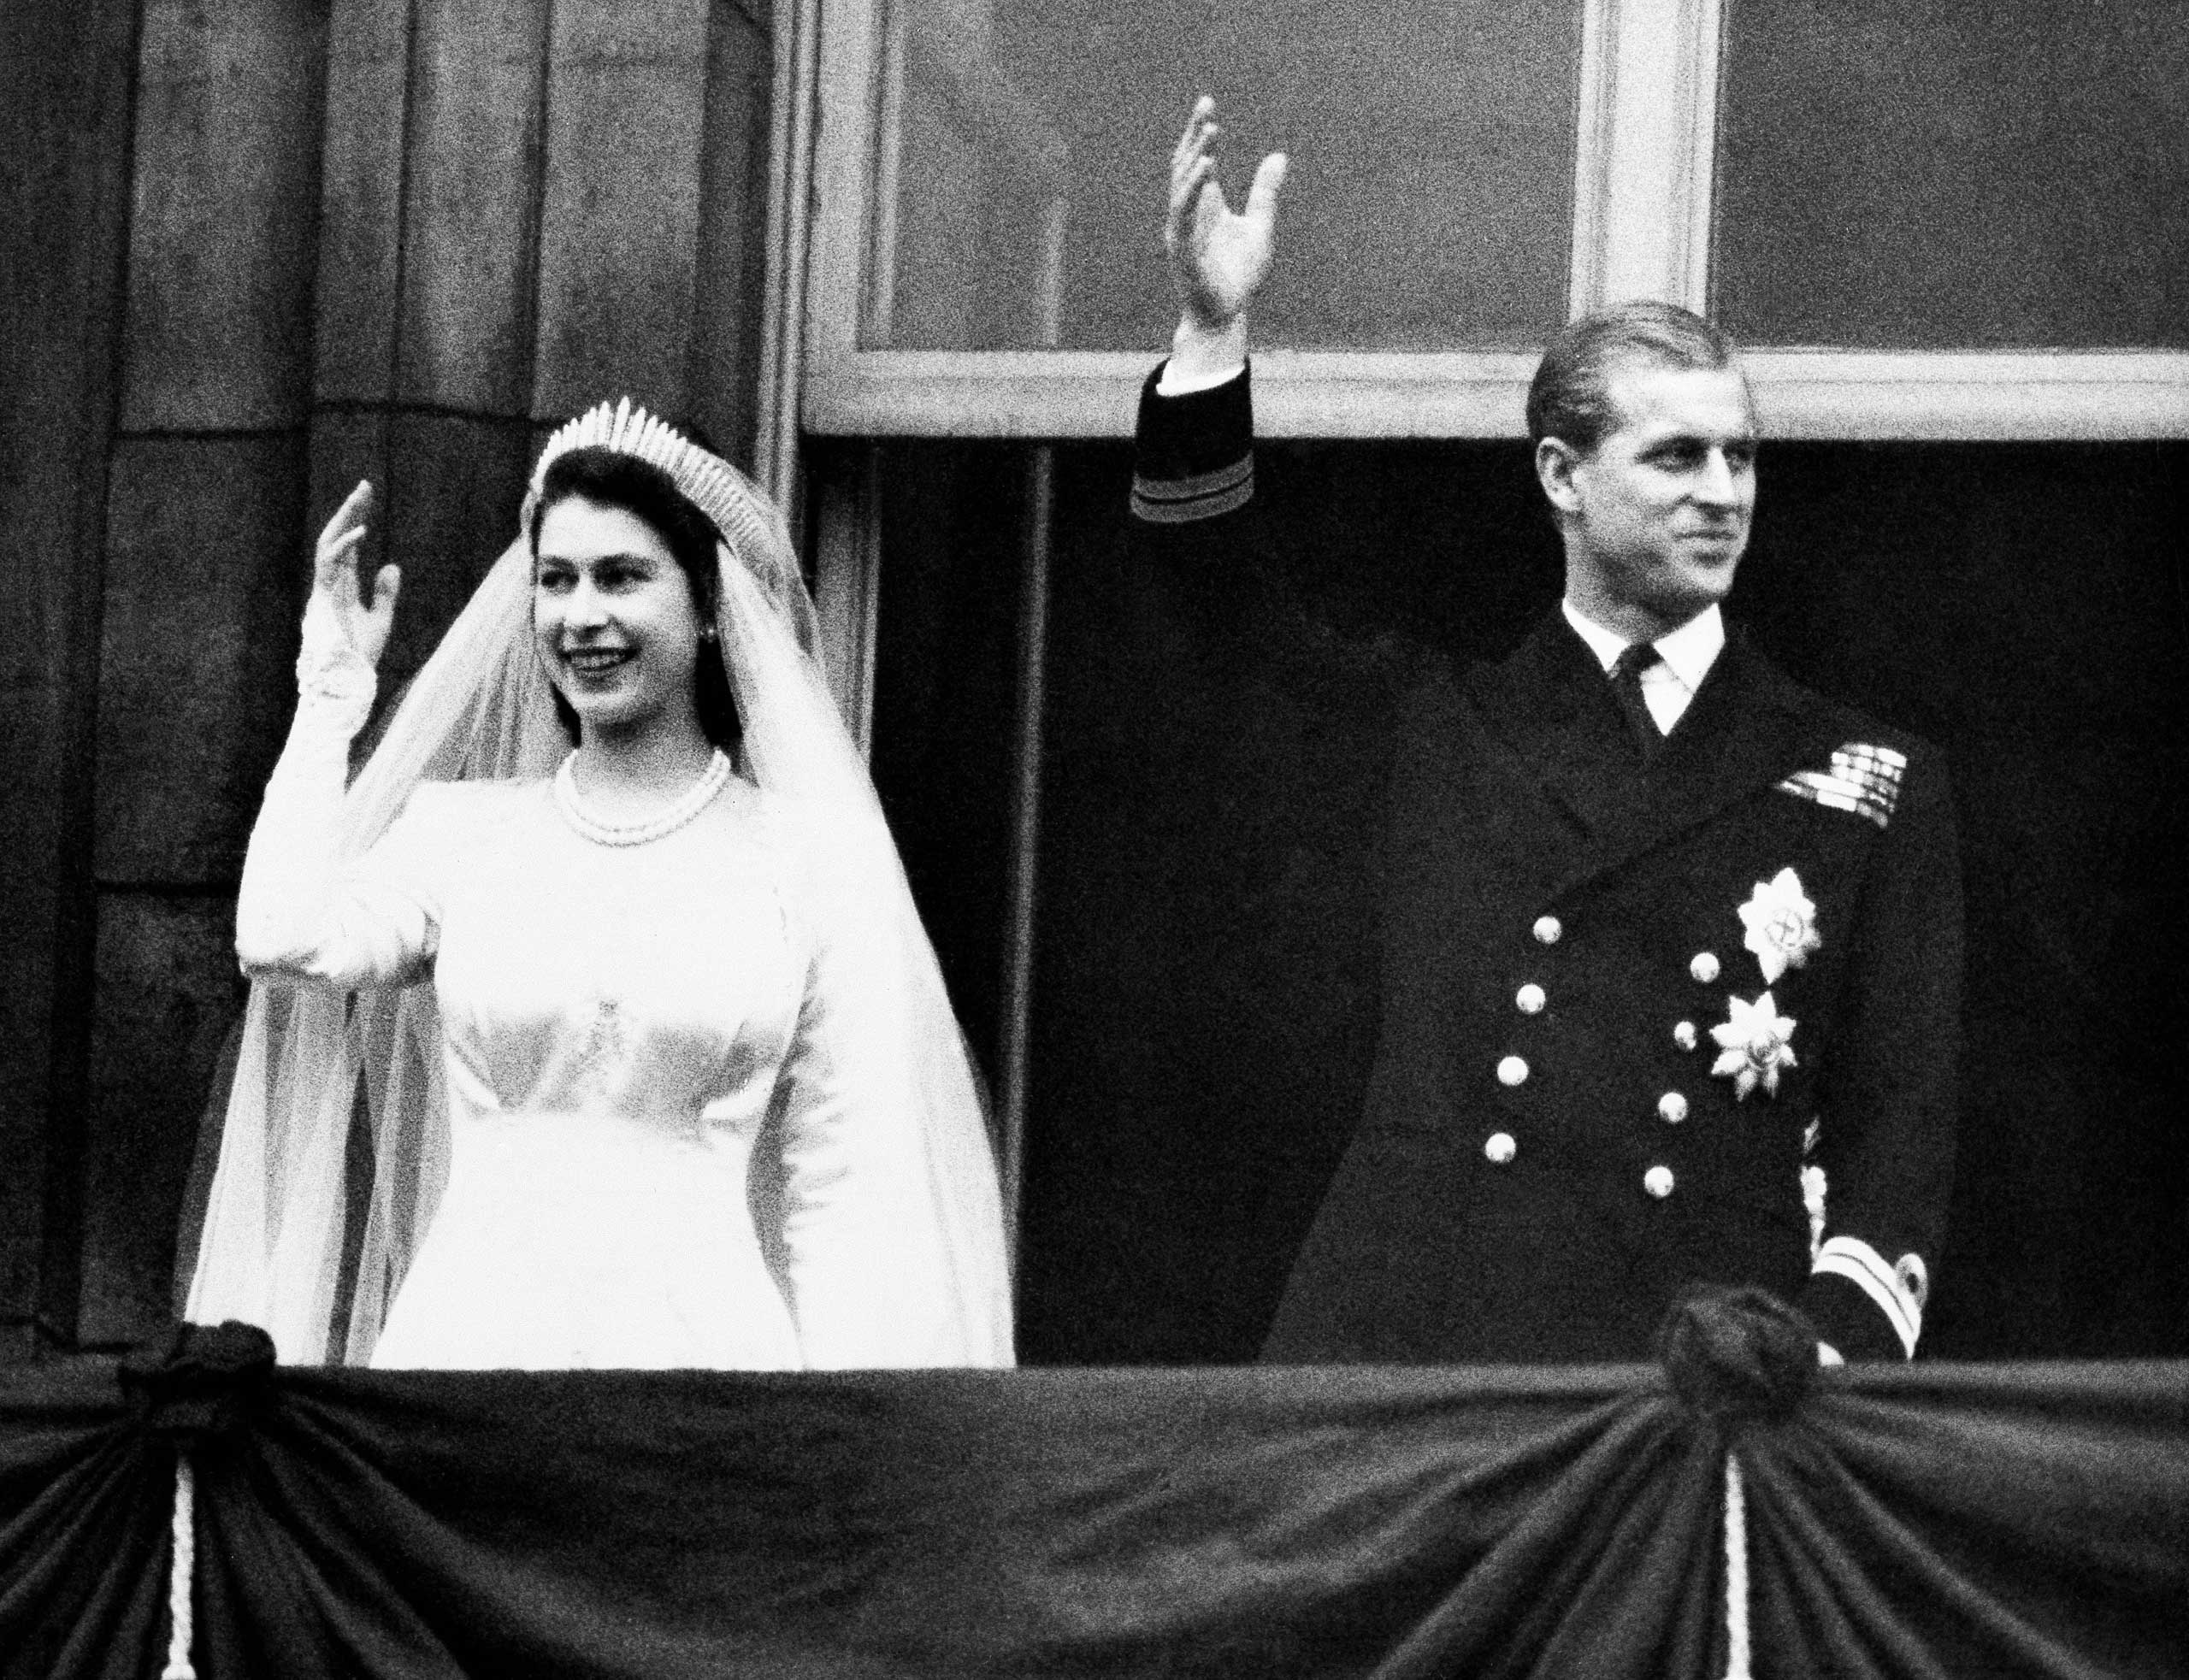 Princess Elizabeth and Prince Philip, Duke of Edinburgh wave to the crowds from the balcony of Buckingham Palace in London on their wedding day. Nov. 20,1947.